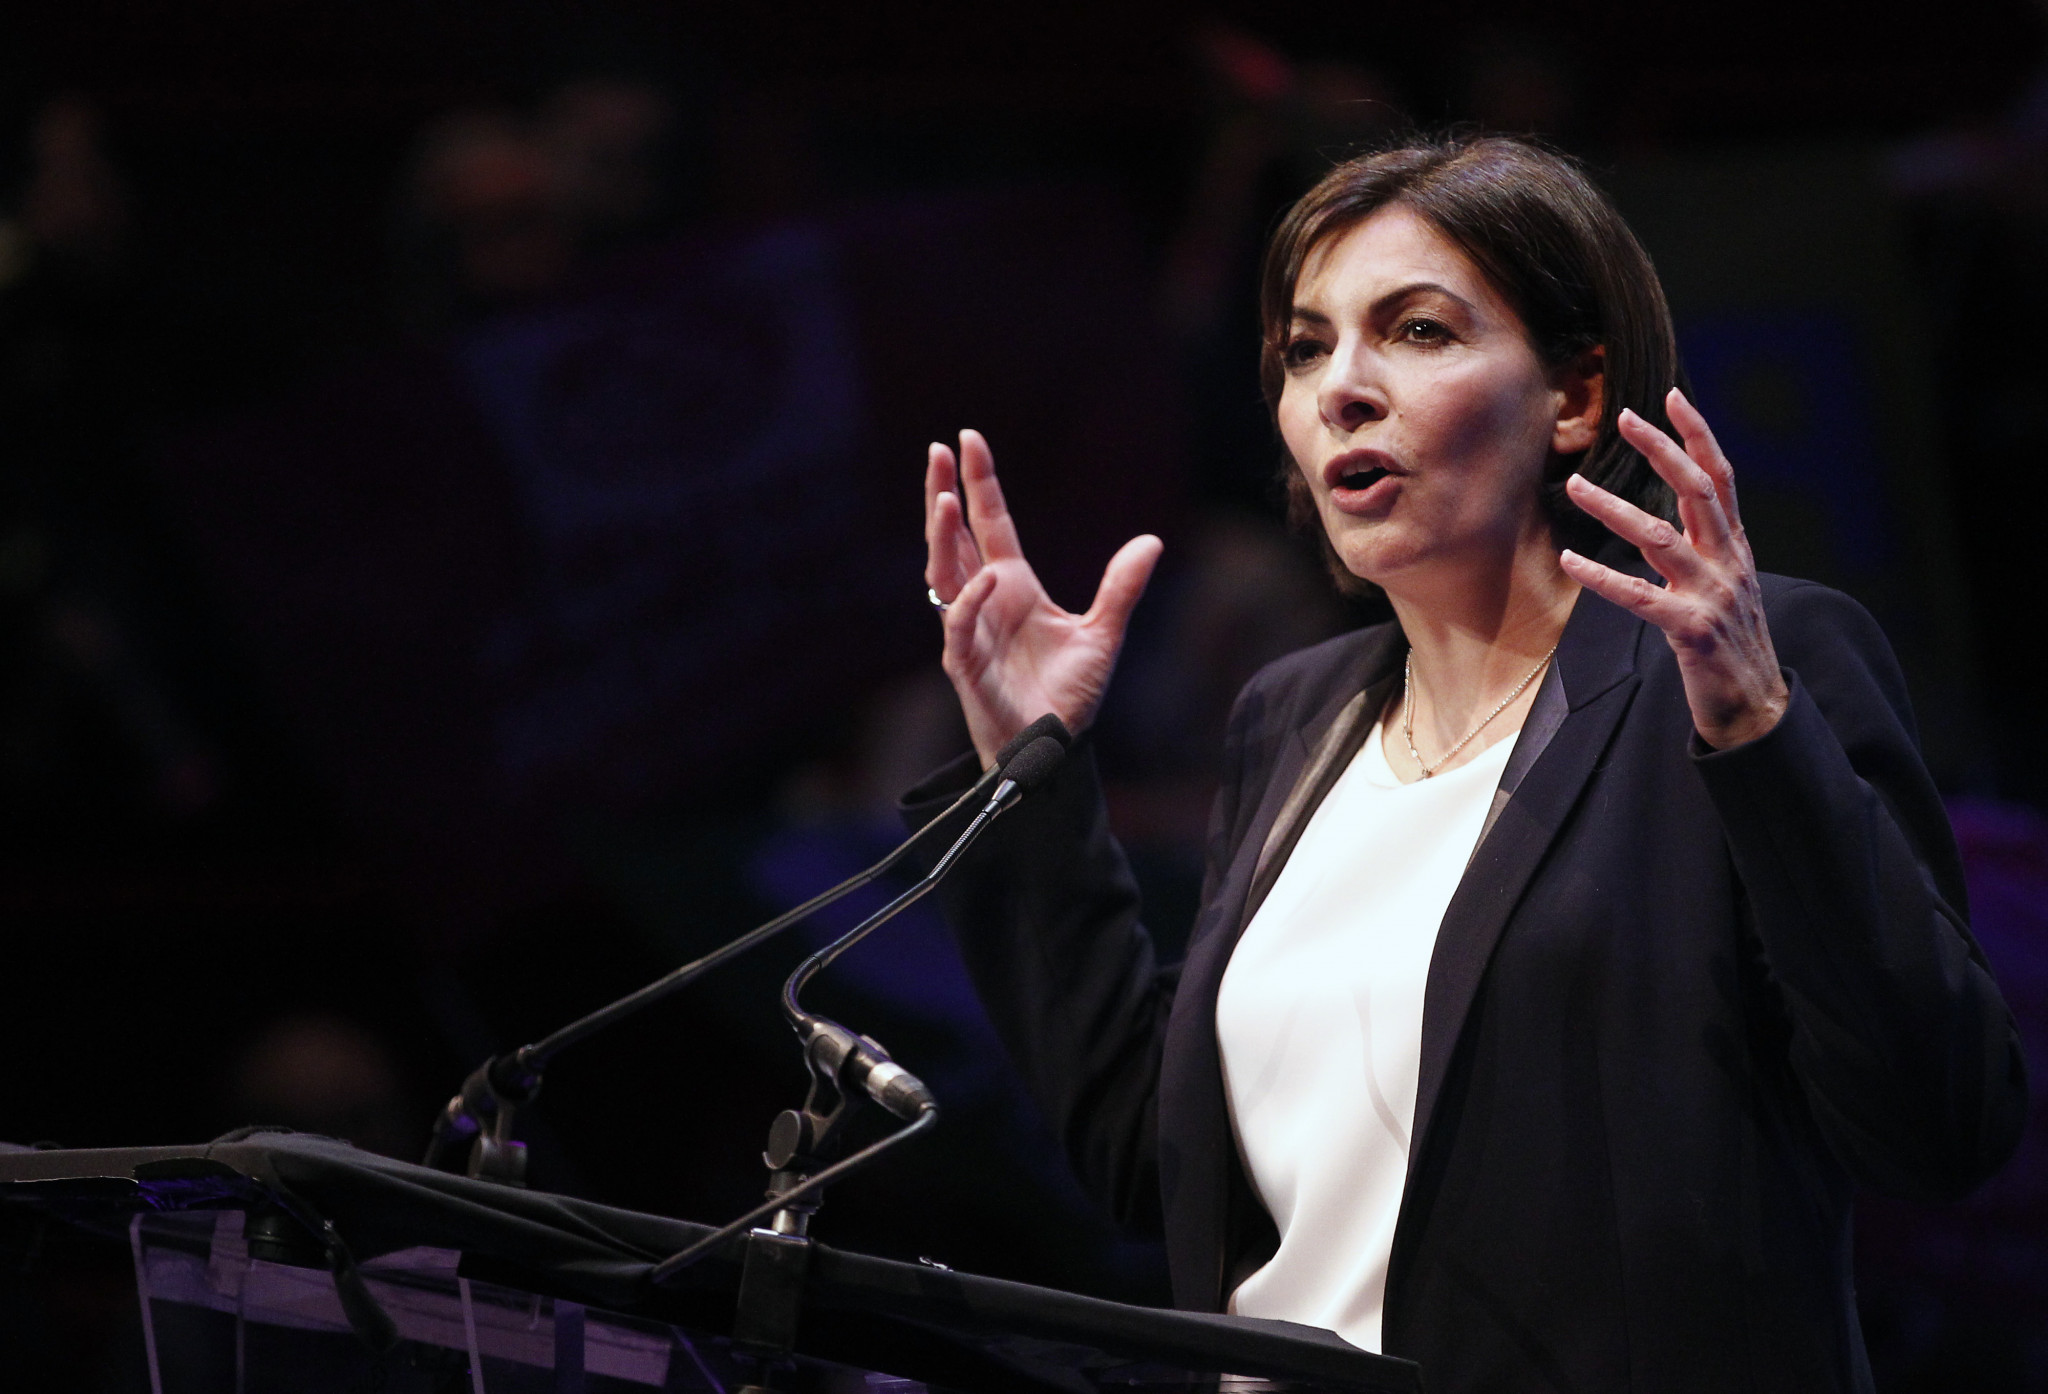 Paris Mayor Hidalgo hits out at cement giant accused of Seine pollution